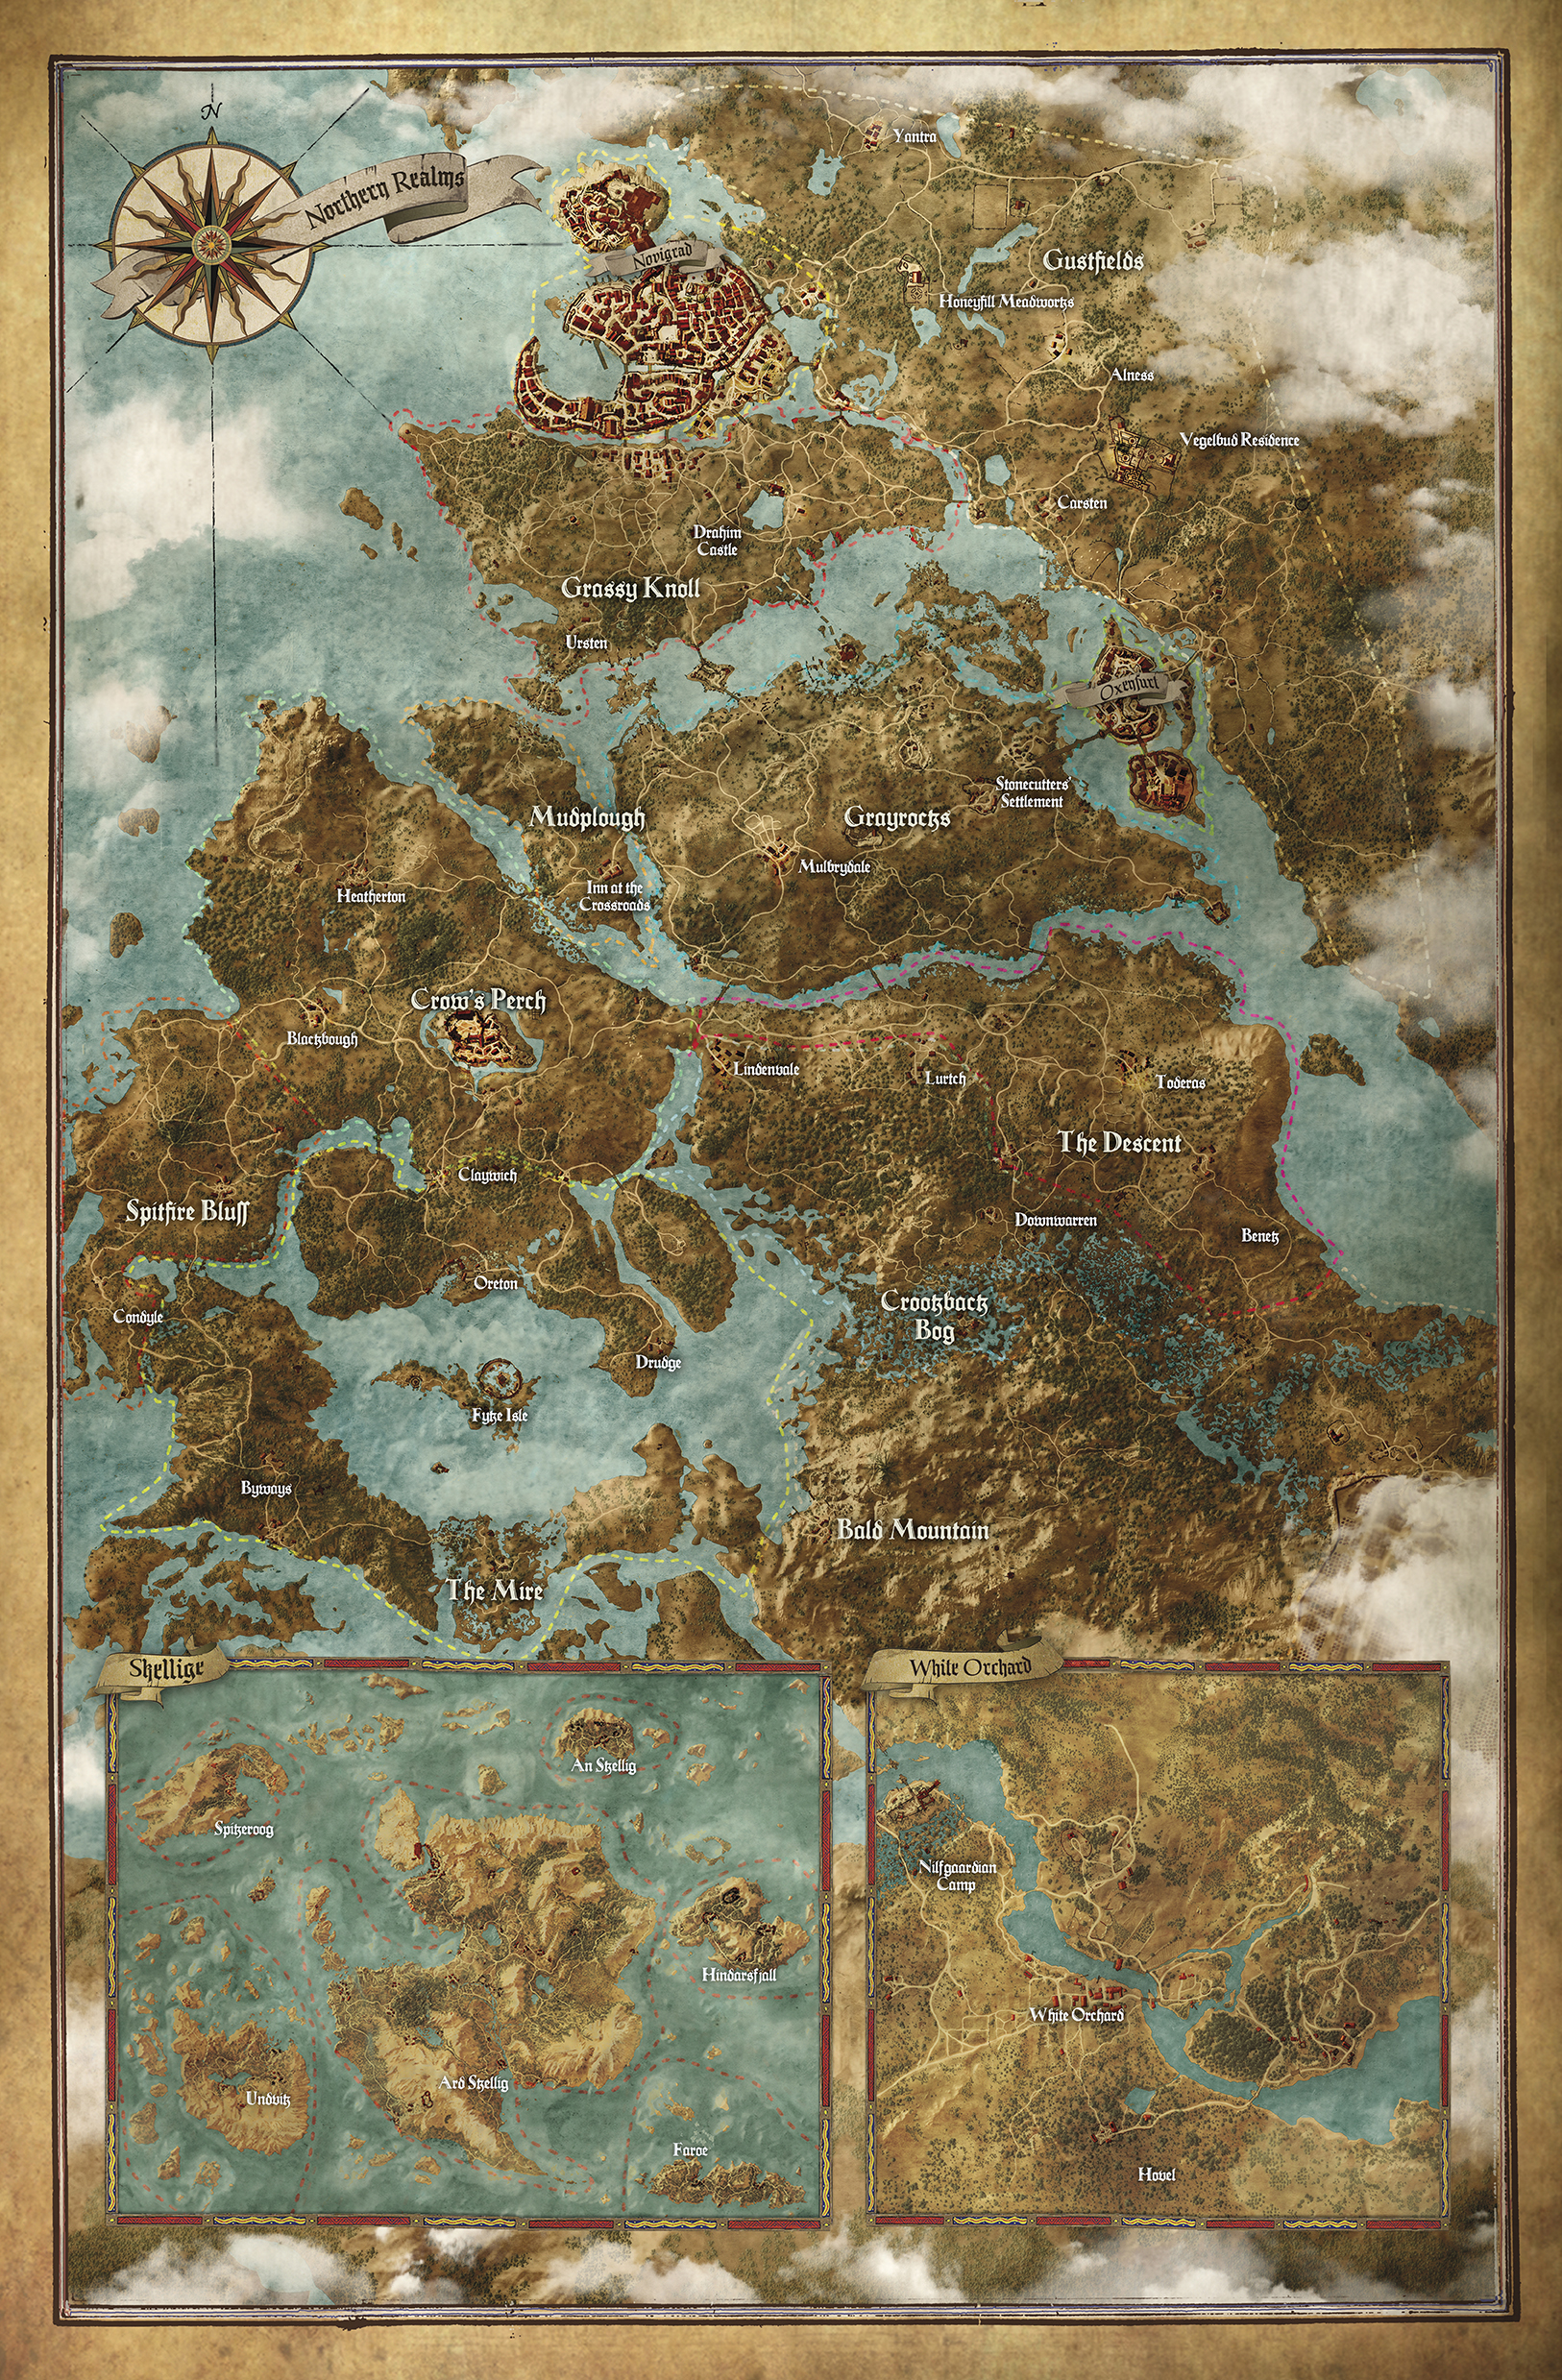 The Witcher 3 map